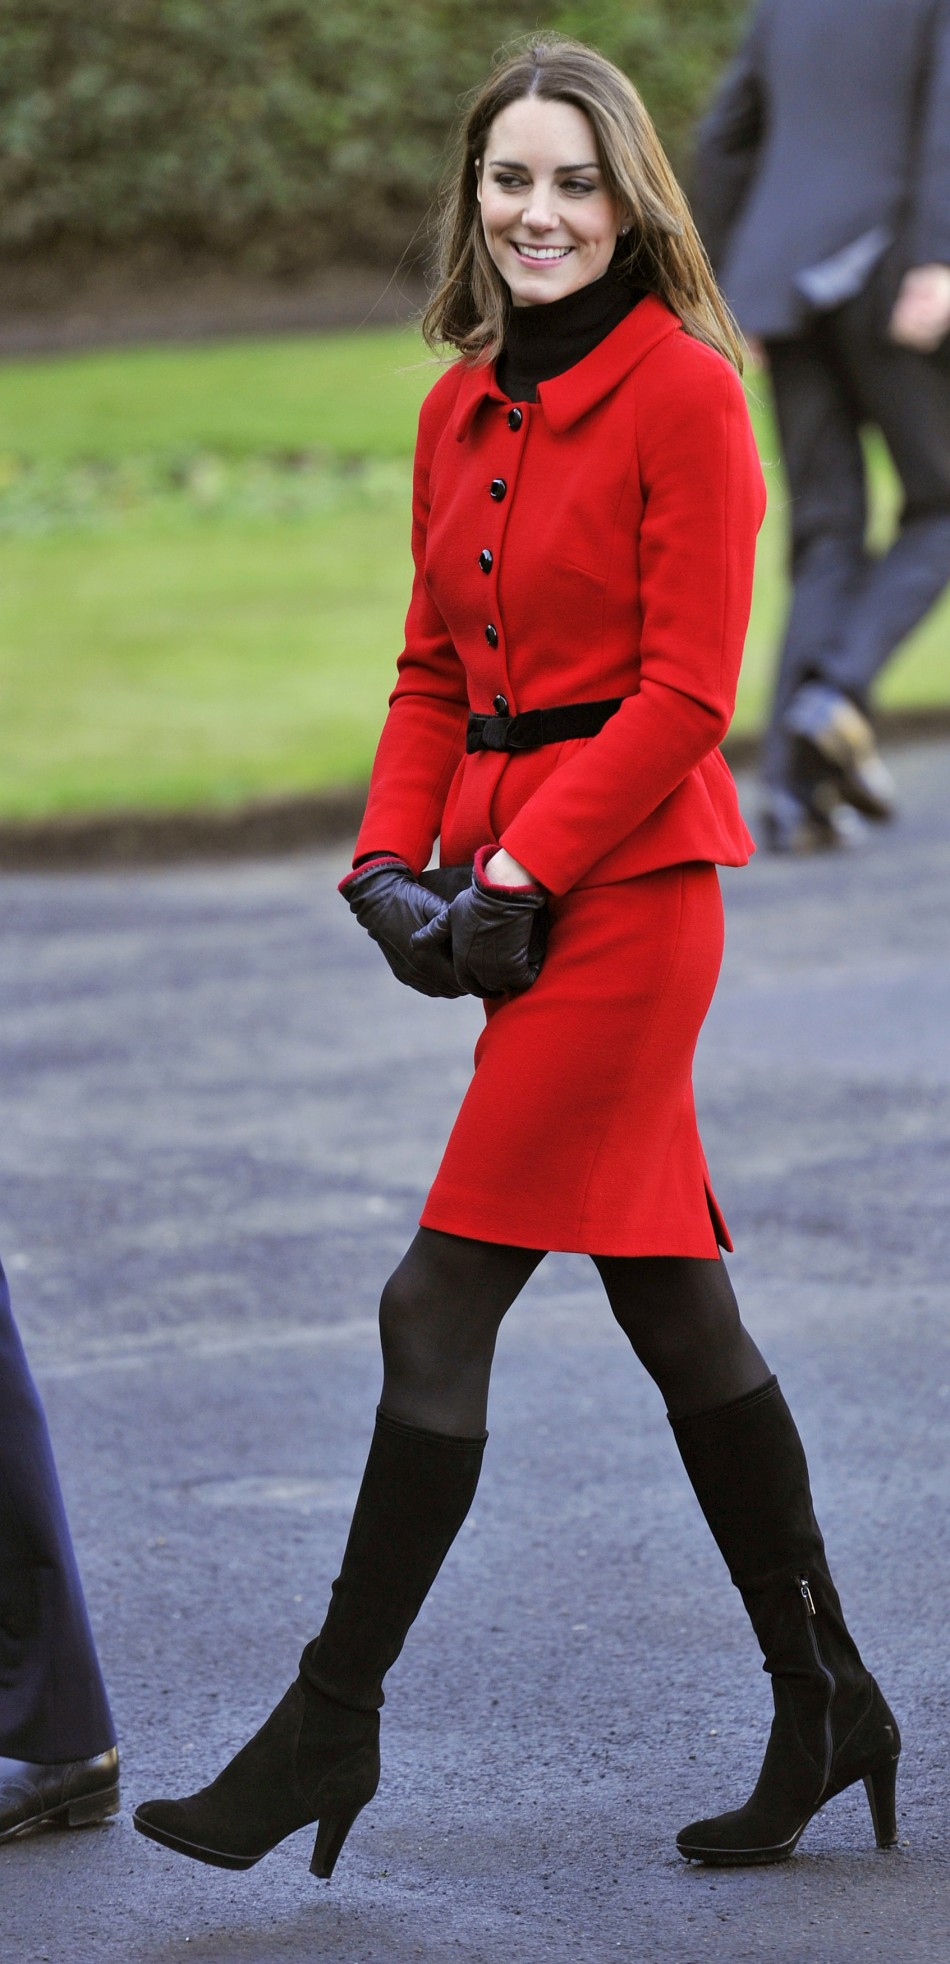 Black Dress Red Shoes What Colour Tights